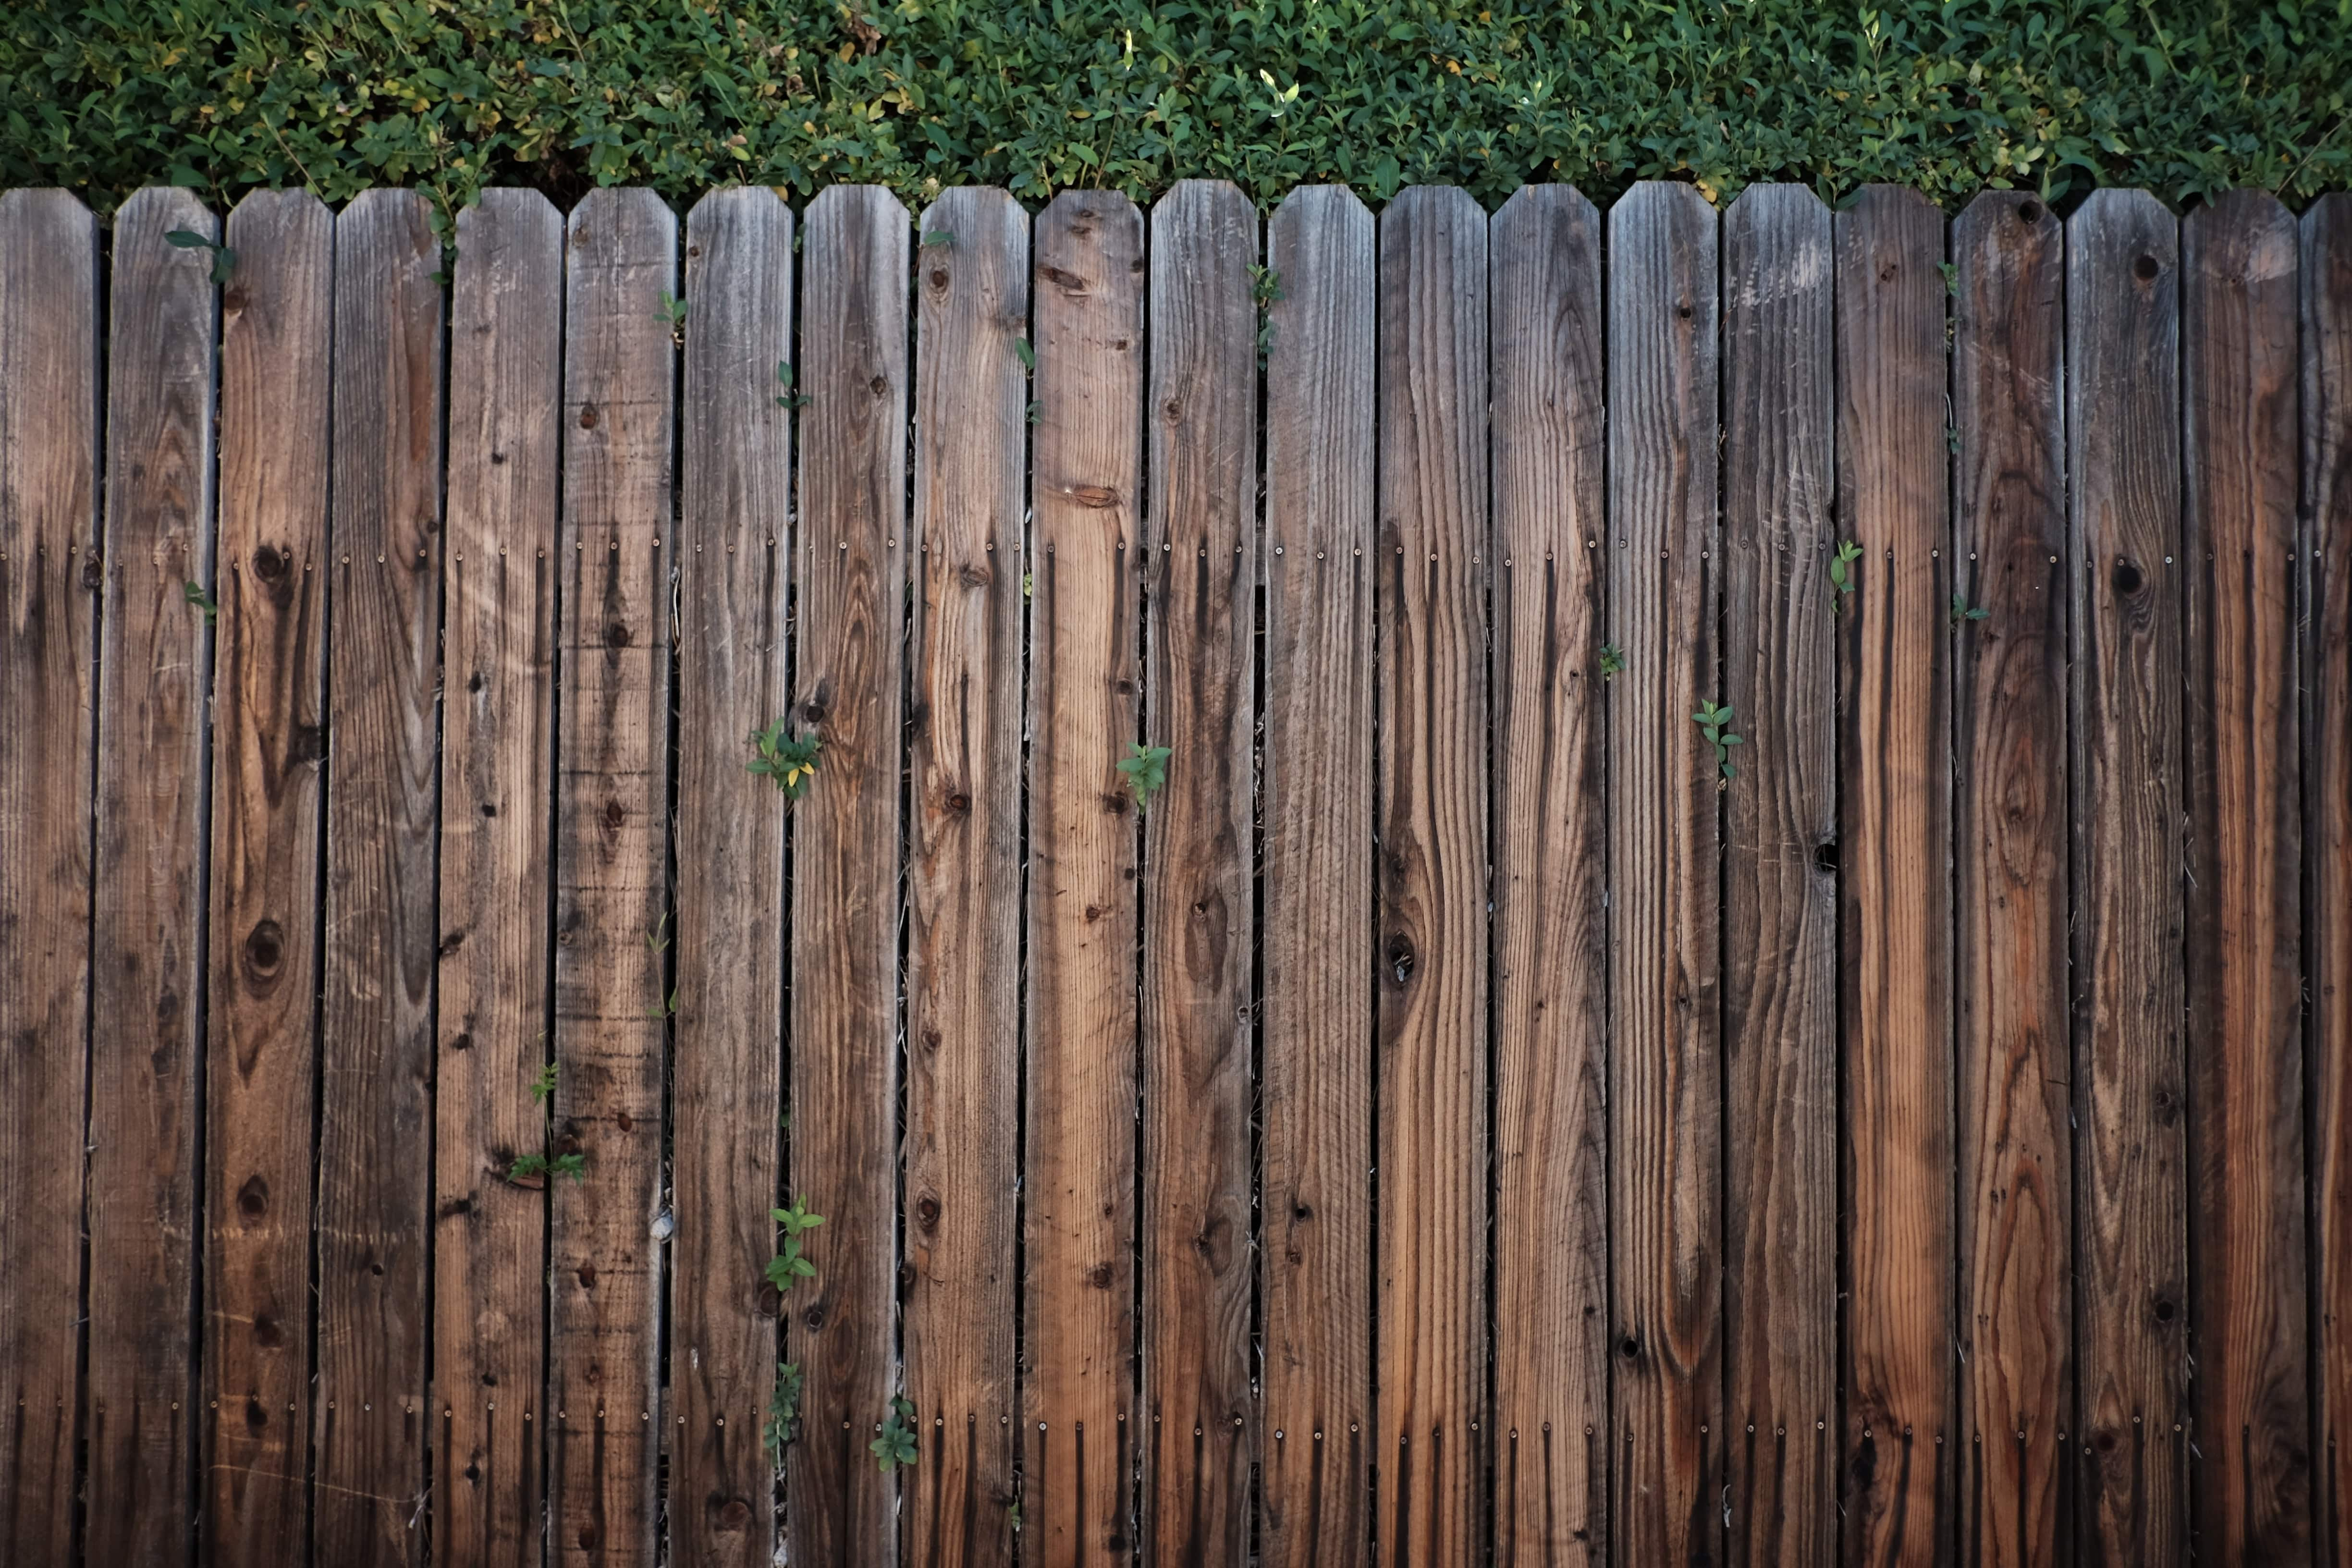 fence-wood-wooden-113726-min